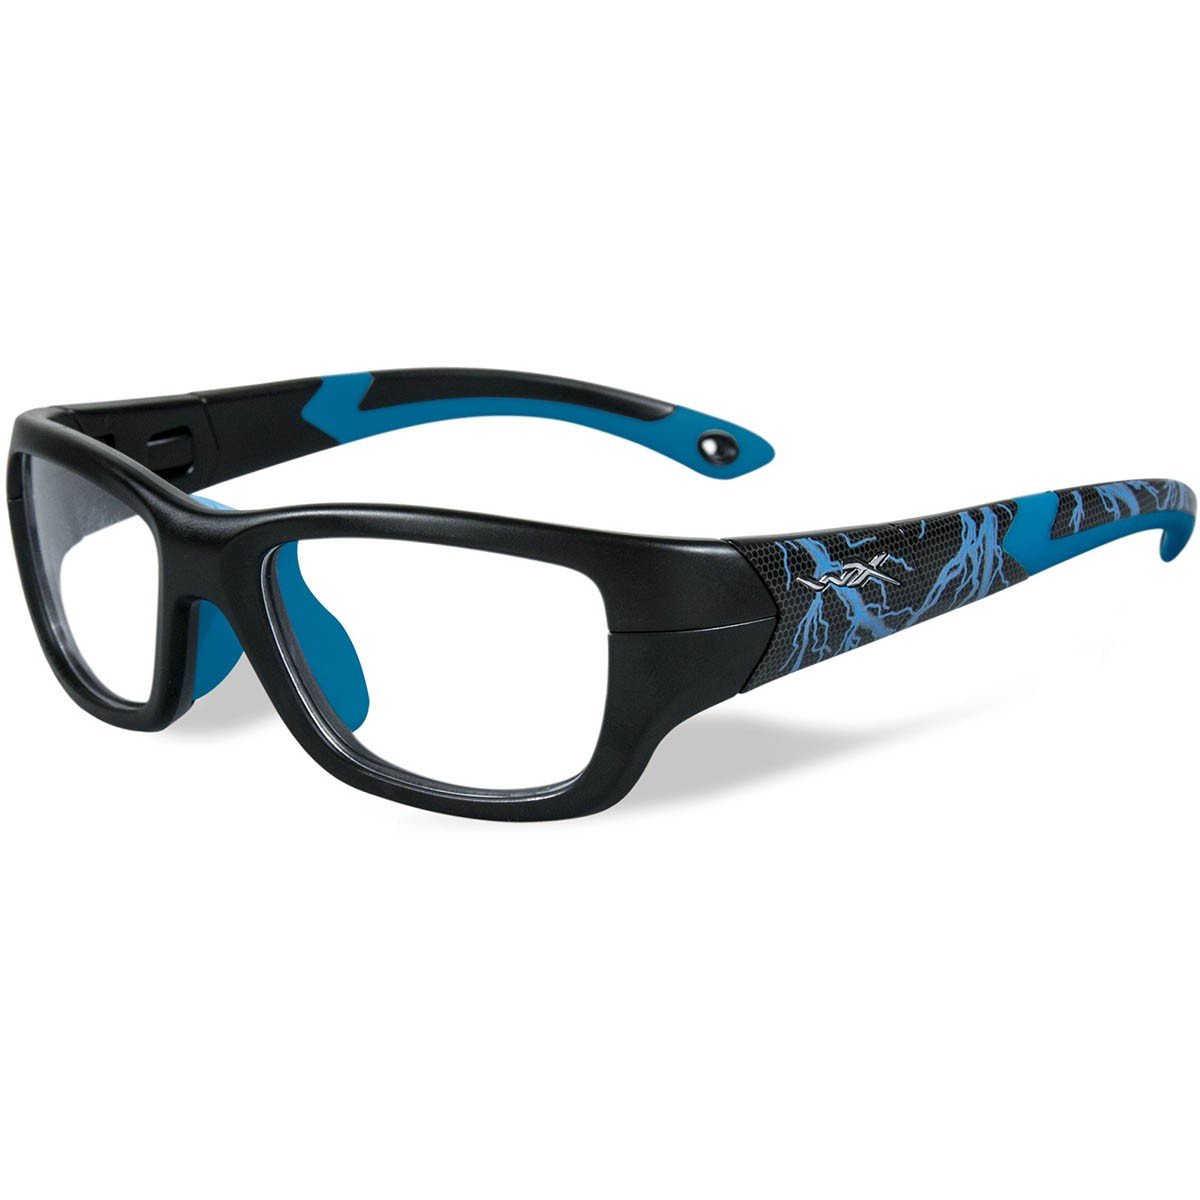 WileyxYFFLA04 WX Flash Safety Glasses - Matte Black with ...